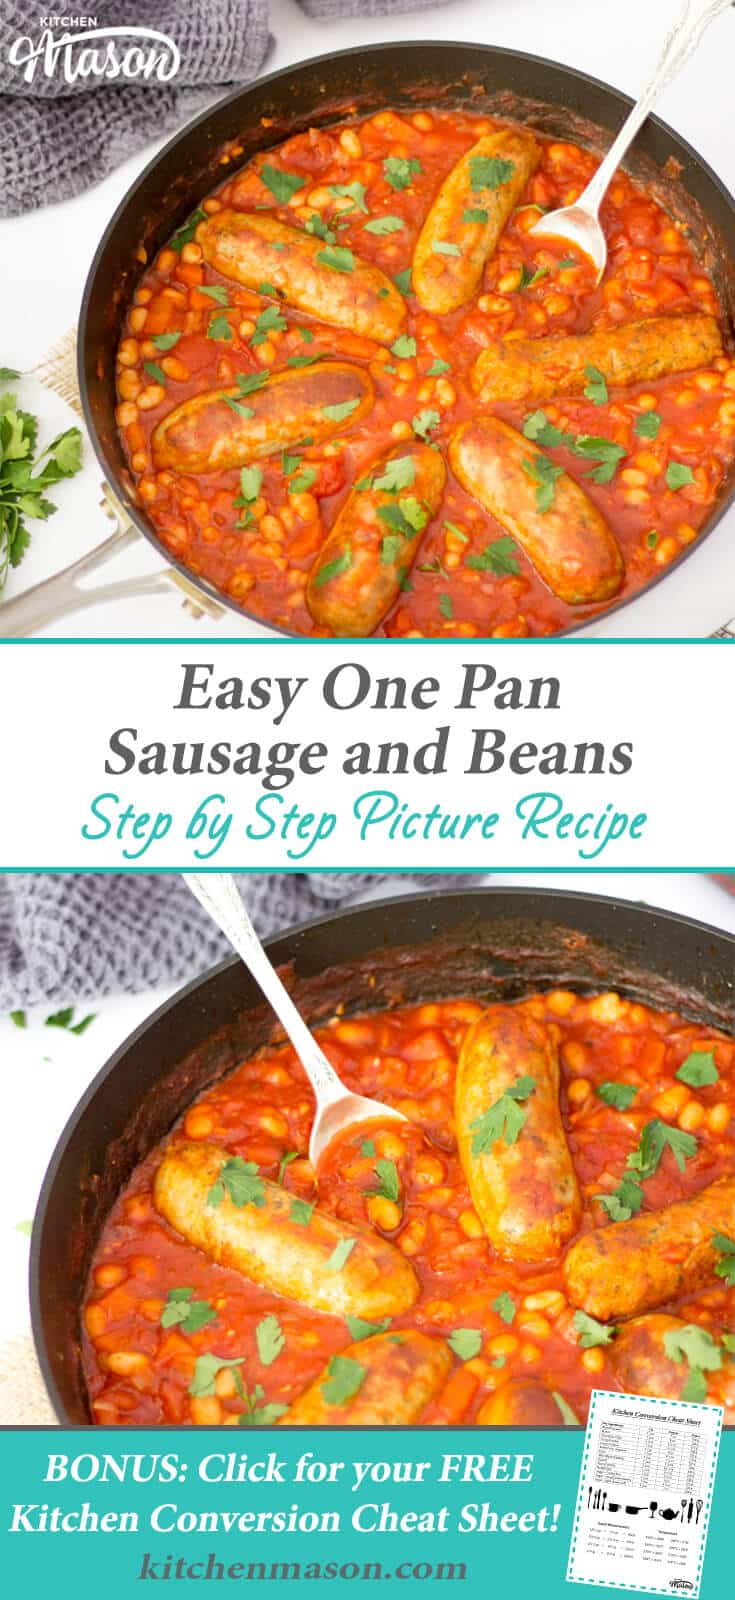 Easy One Pot Recipes | One Pan Recipes | One Pan Sausage and Beans